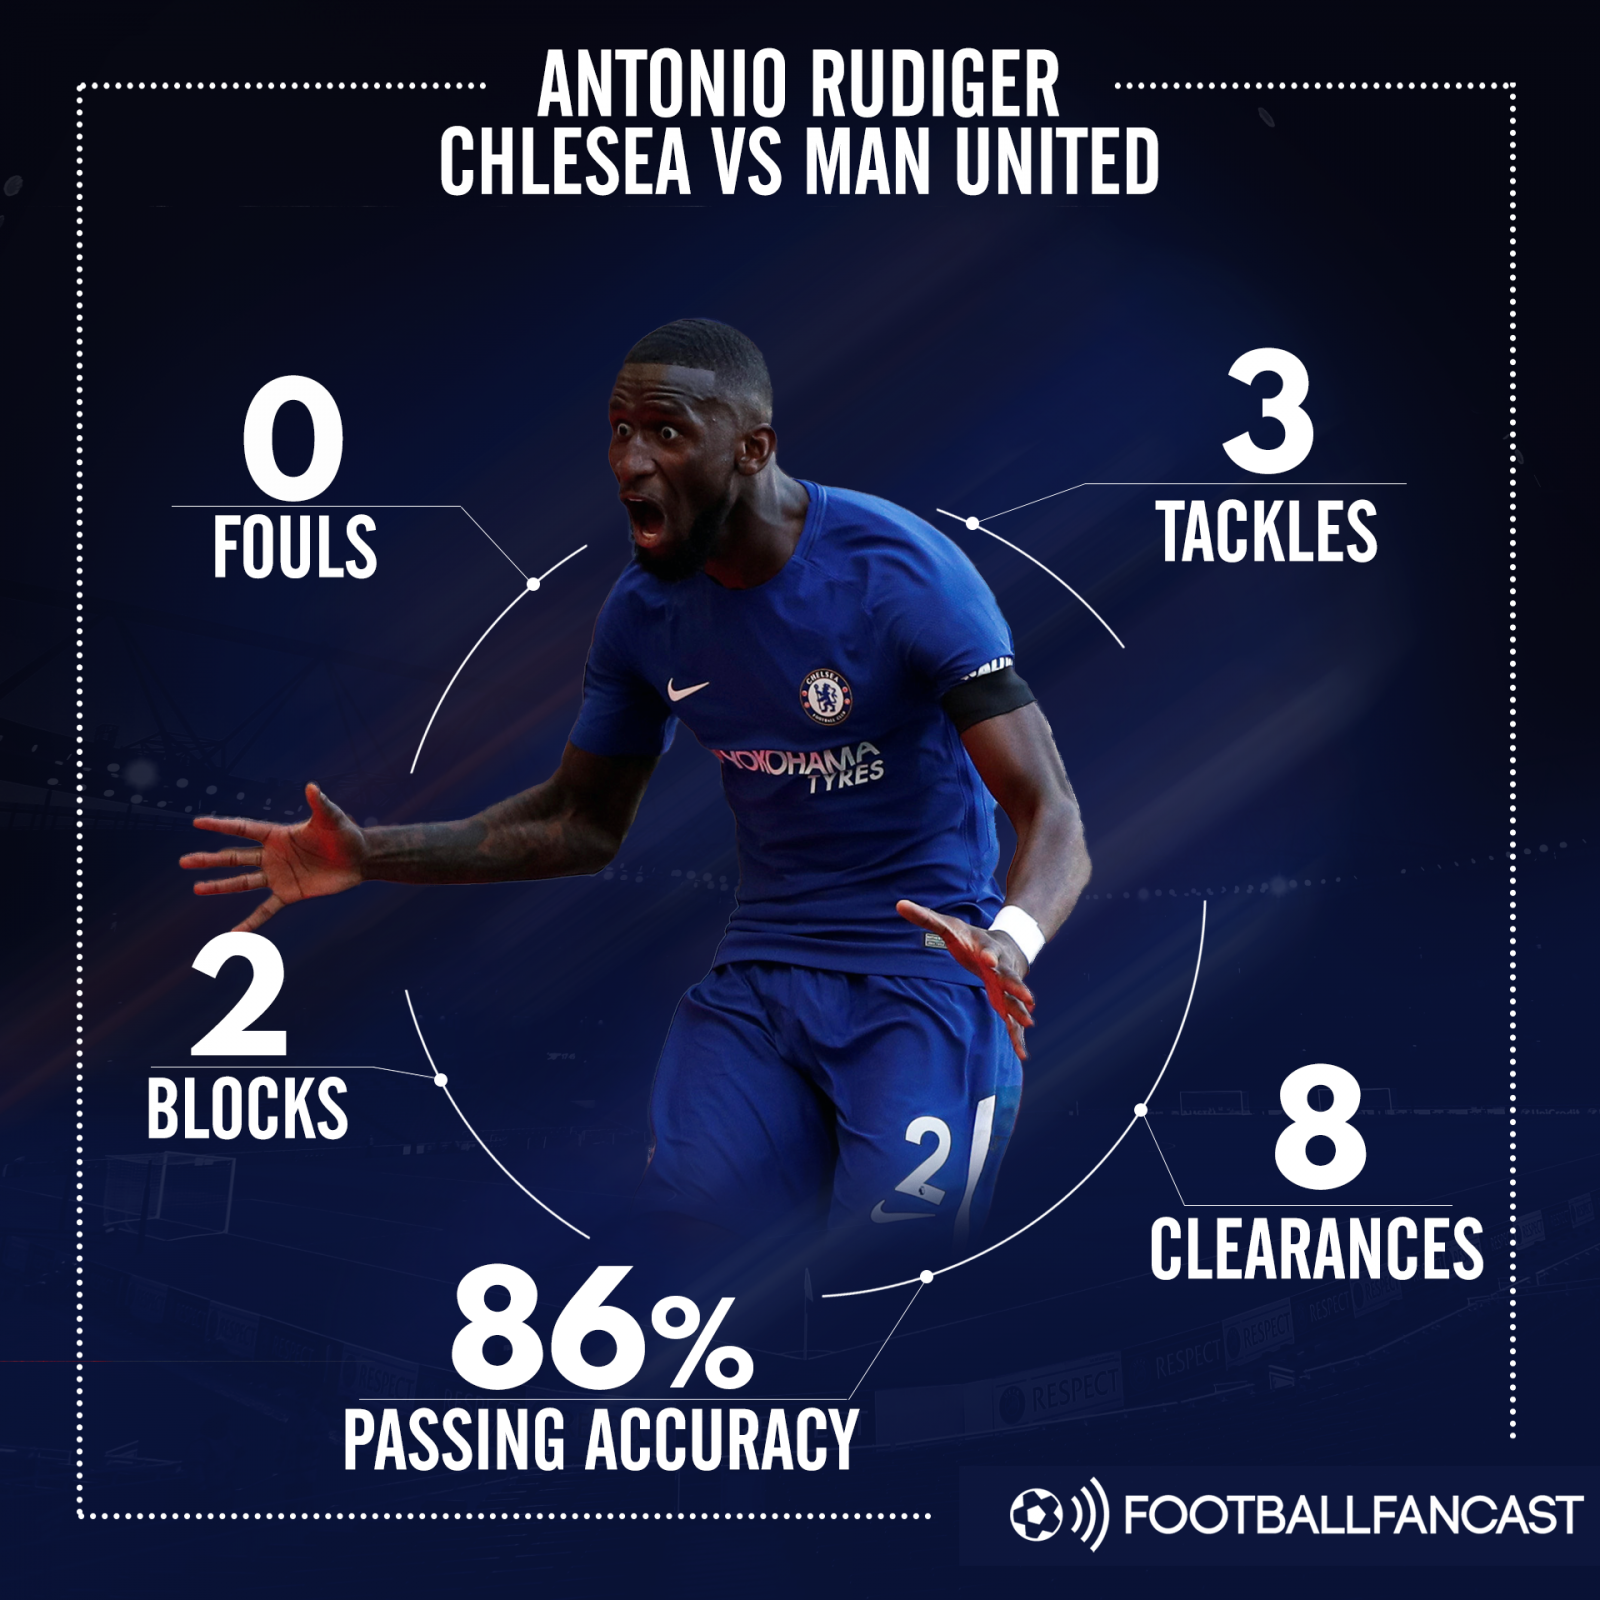 Antonio Rudiger's stats from Chelsea's 1-0 win over Man United